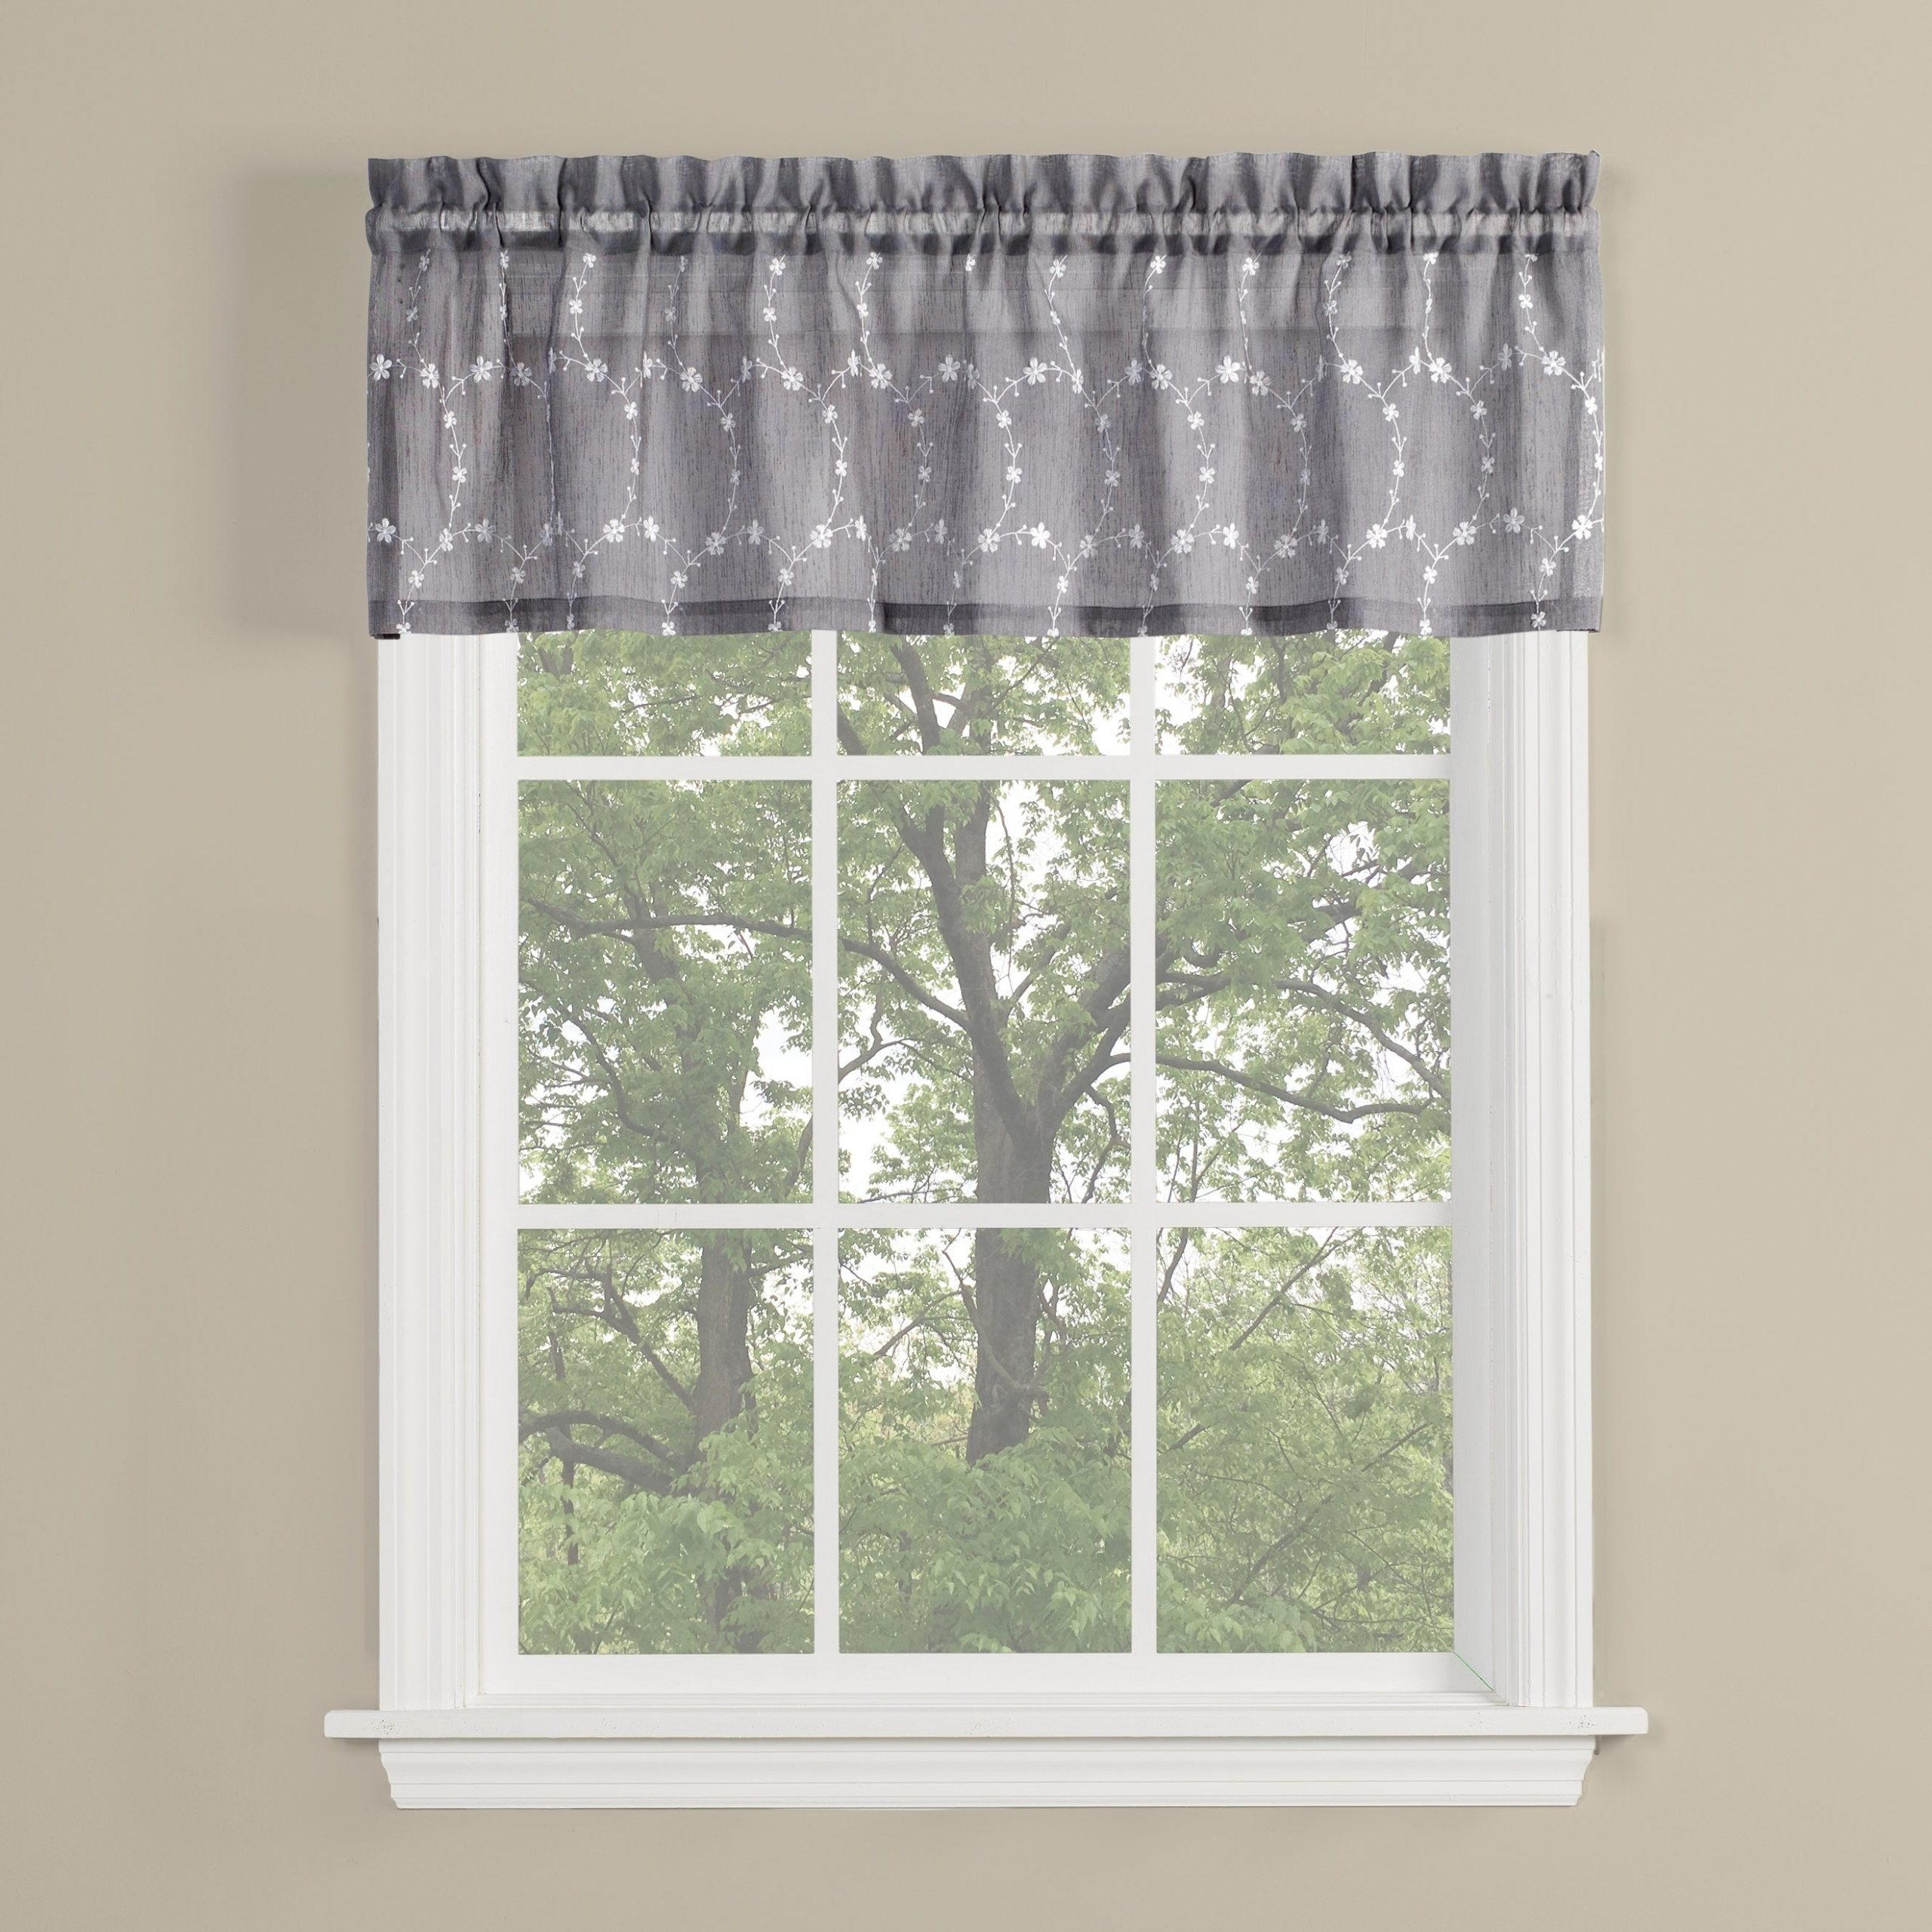 Cumberland Tier Pairs In Dove Gray Regarding Well Known Skl Home Briarwood 13 Inch Valance In Dove Gray (View 11 of 20)